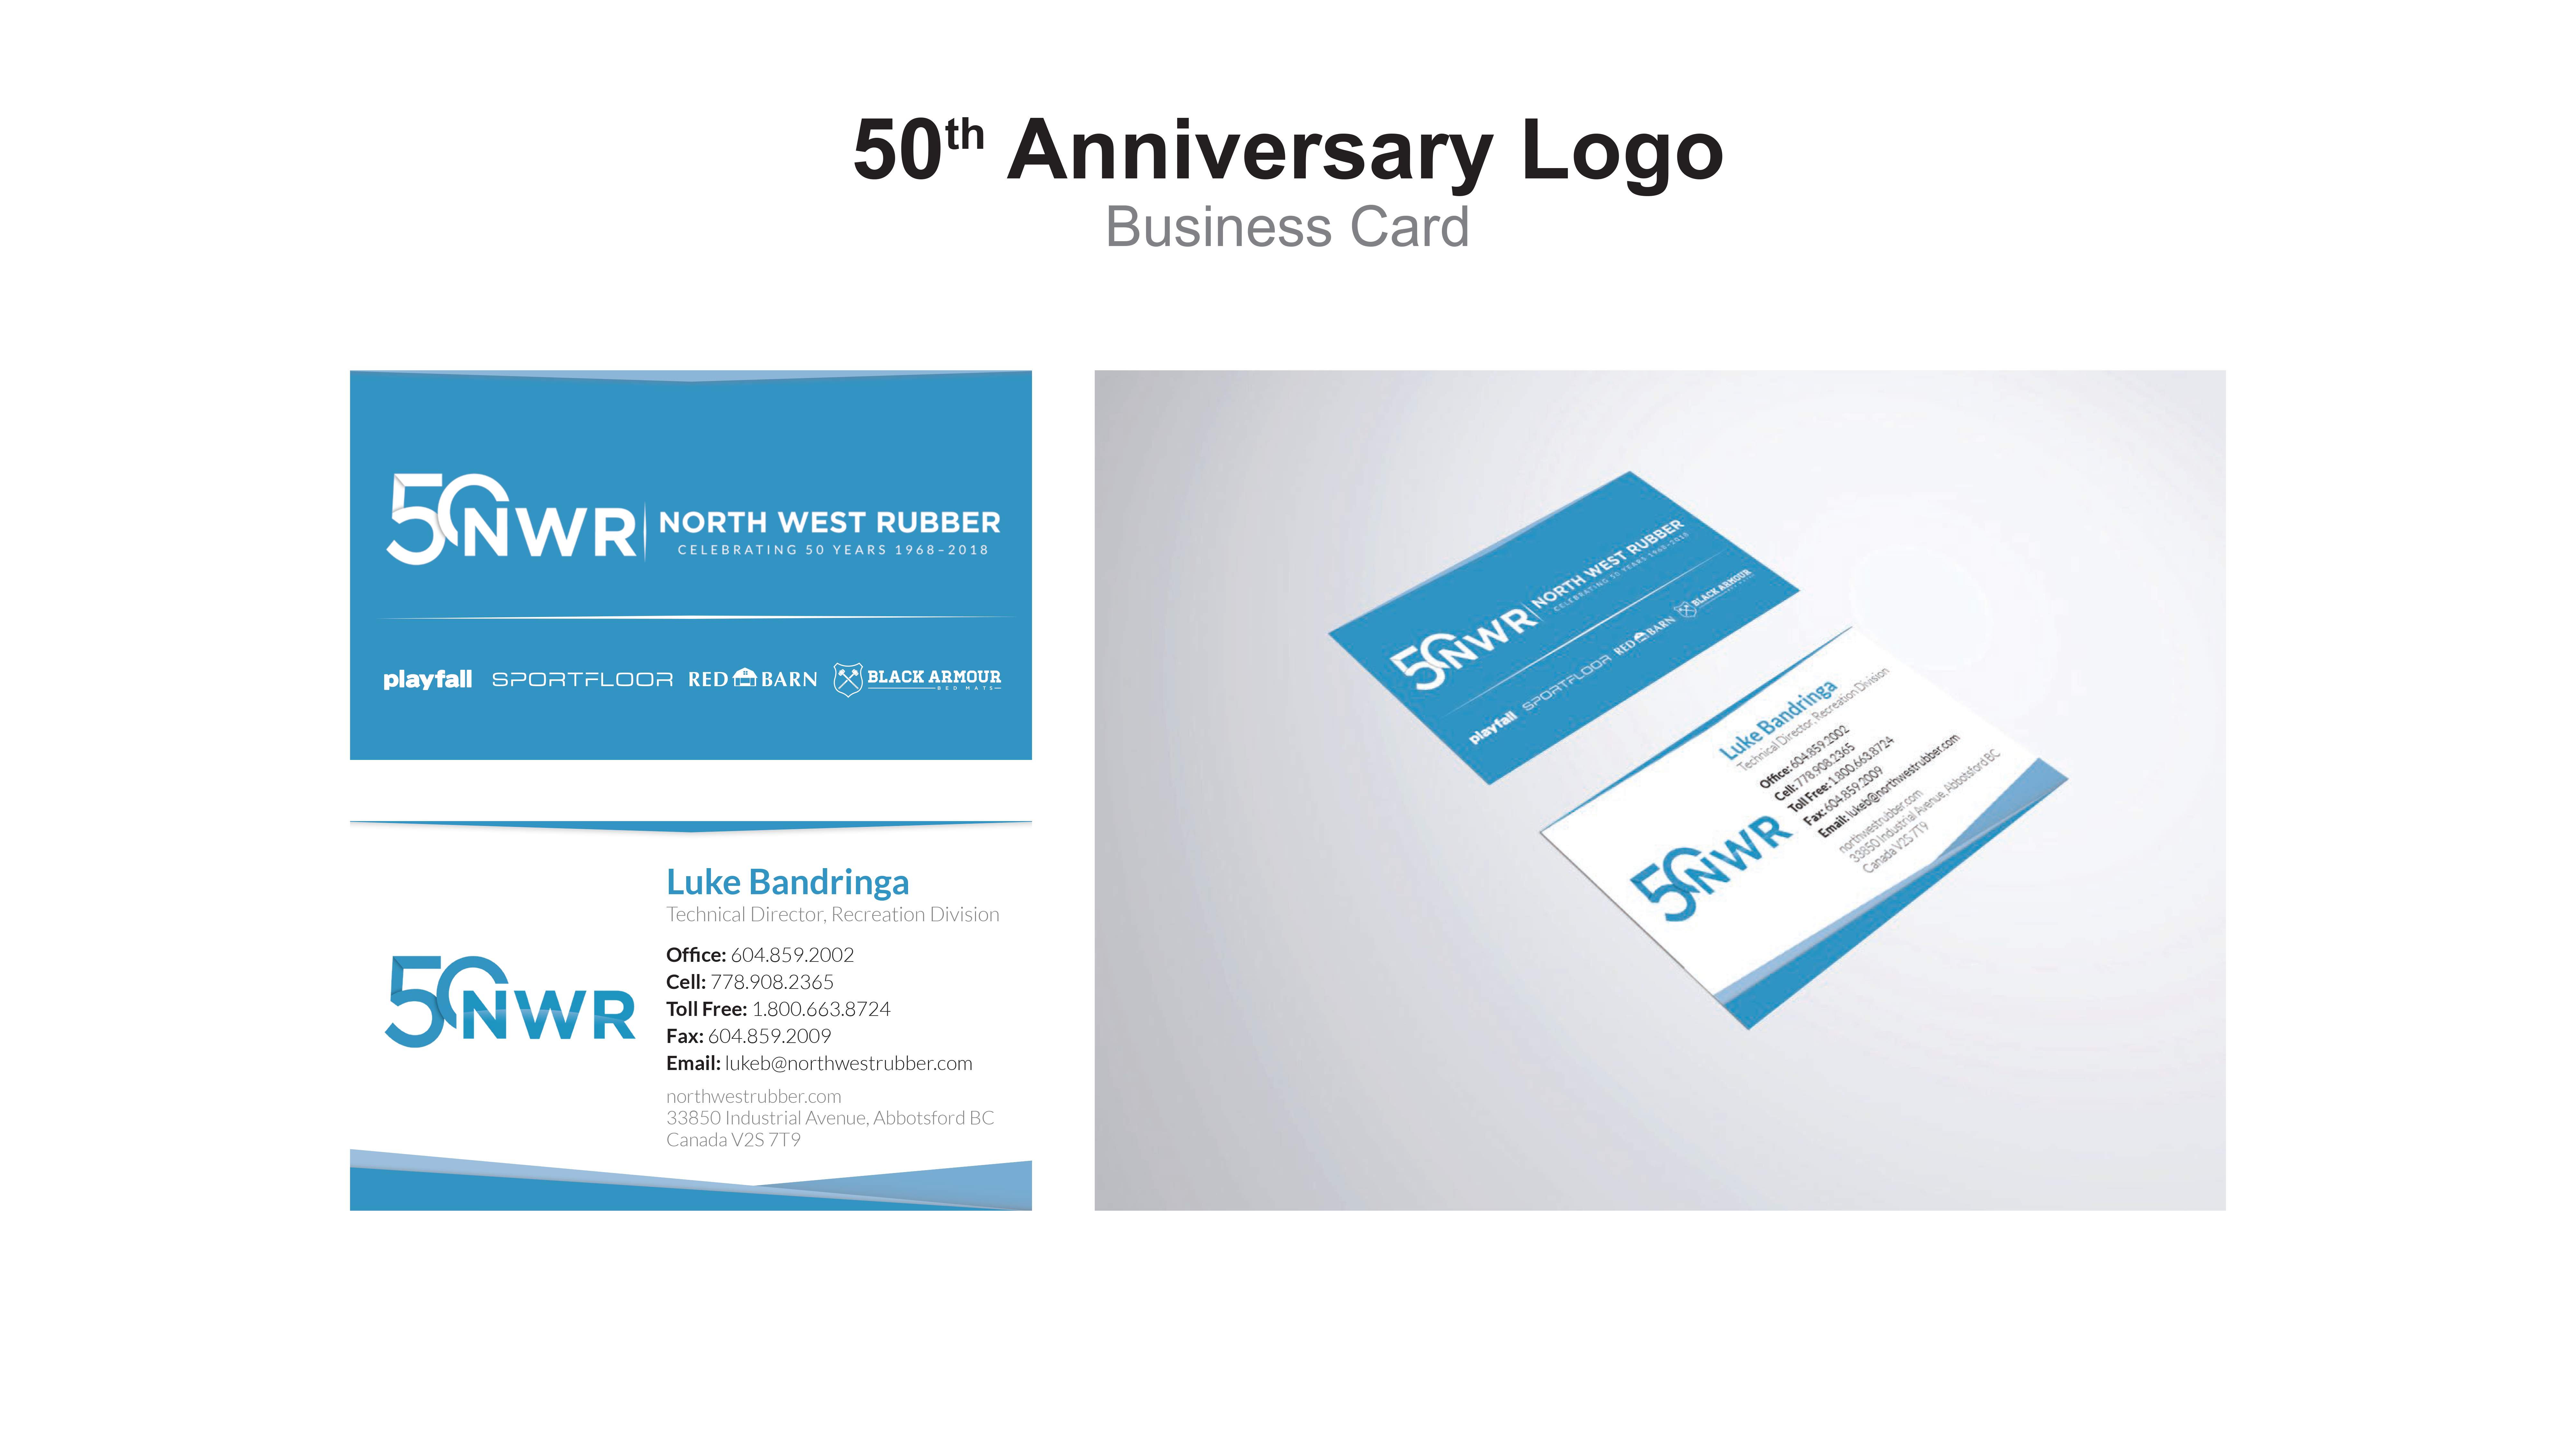 North West Rubber - 50 years business card design